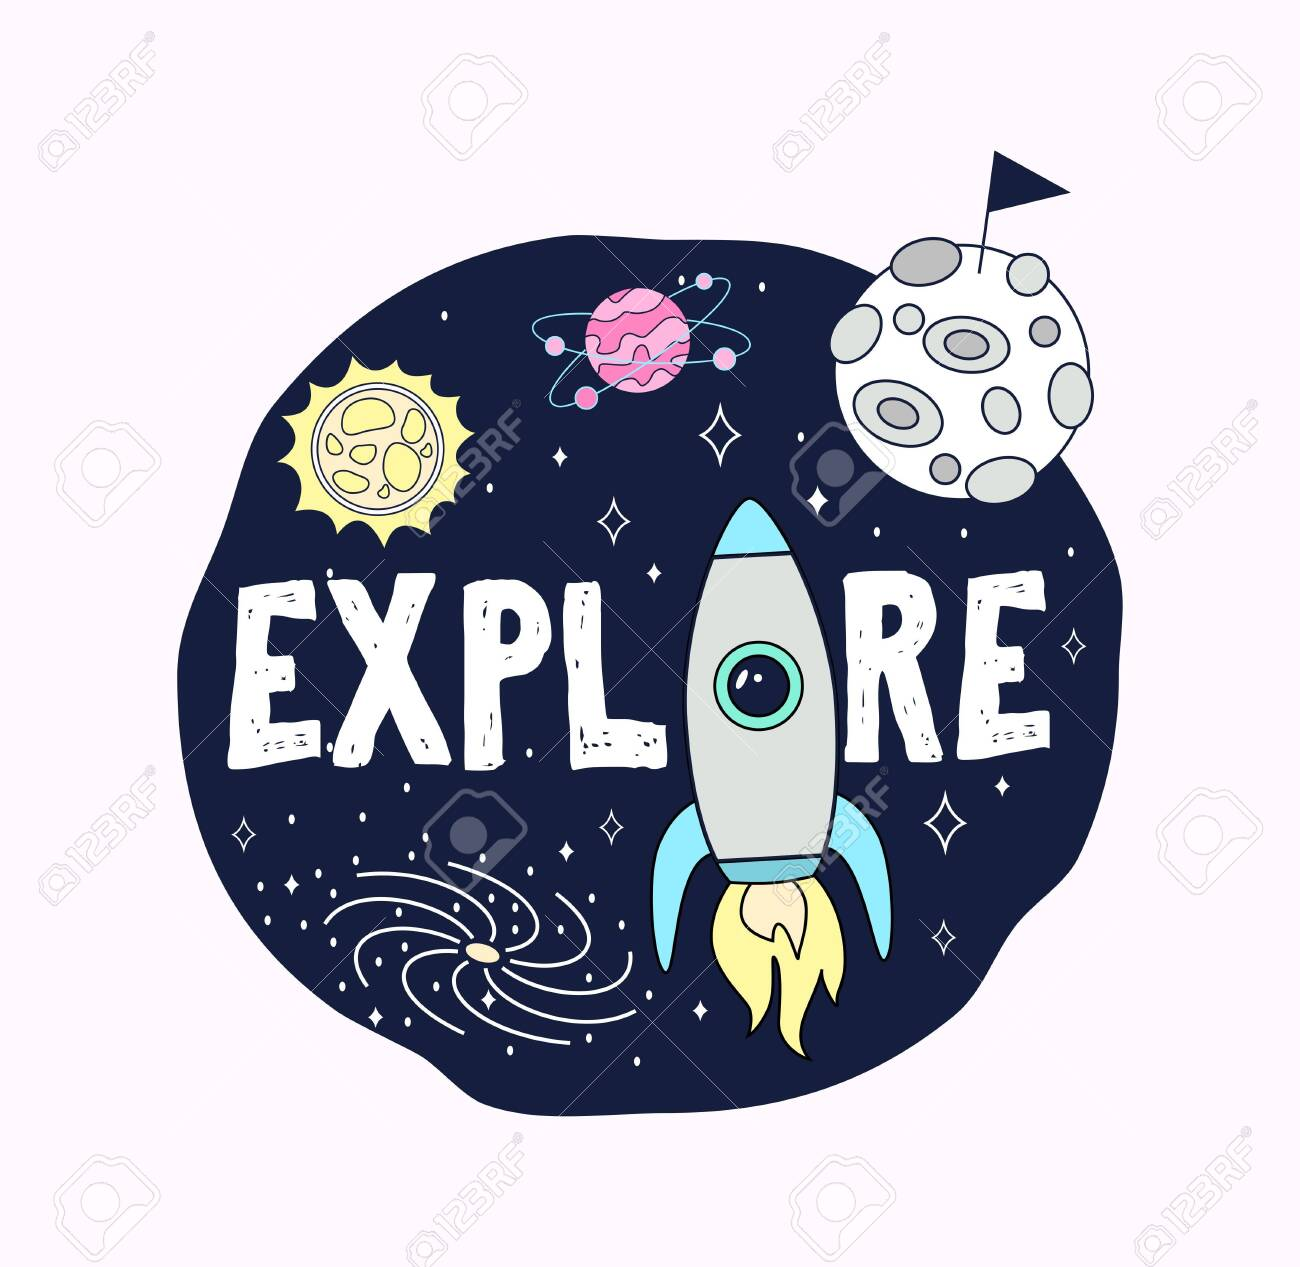 Space print concept. Explore space card with planets, stars and rocket. Cosmic greeting card or print design. Vector illustration - 122756781